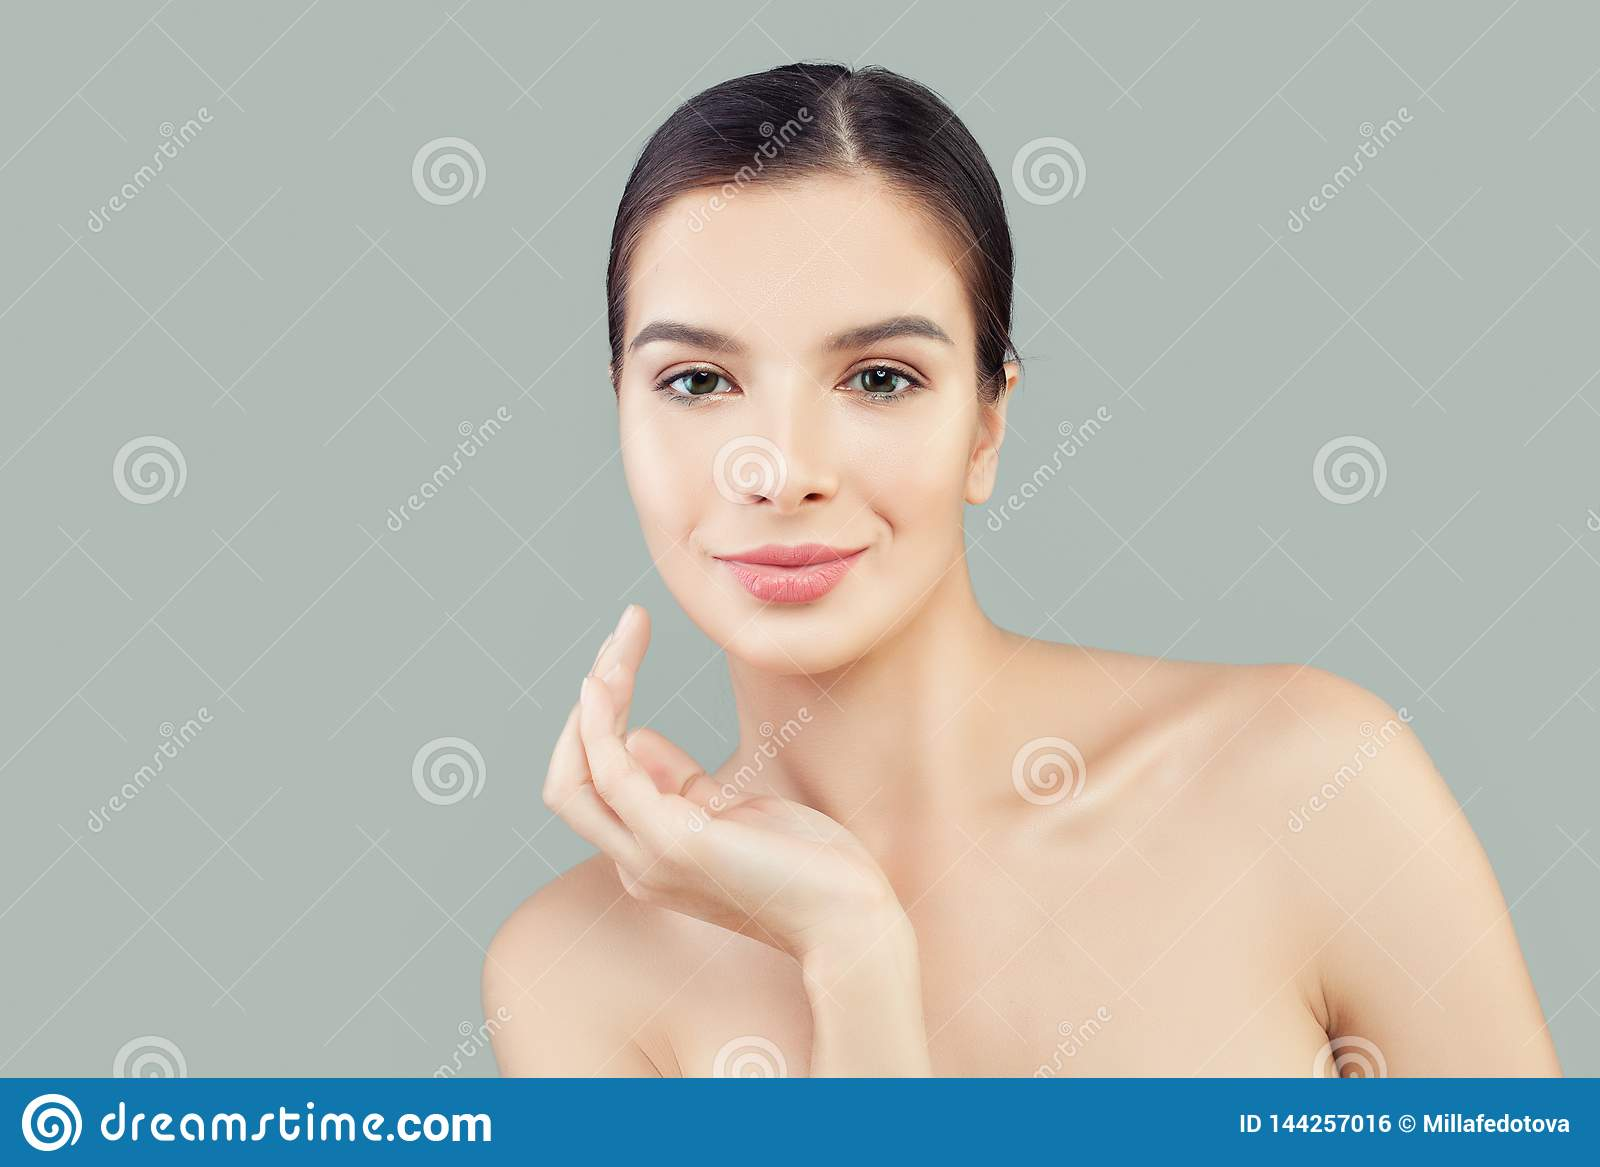 Spa model woman portrait. Facial treatment, face lifting, anti aging and skin care concept